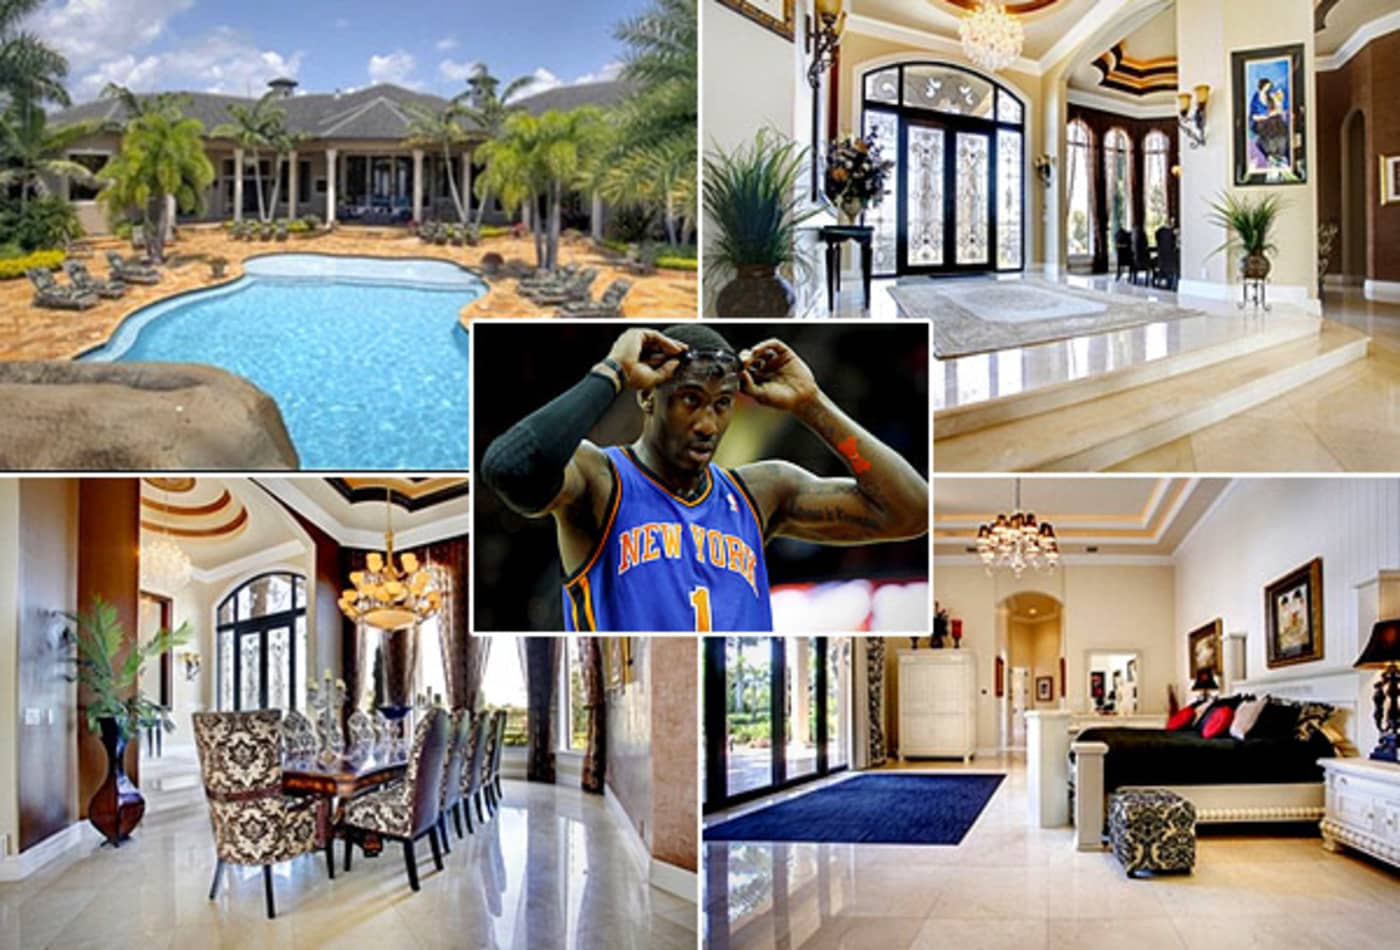 Amare-Stoudamire-Homes-of-NBA-Stars-CNBC.jpg